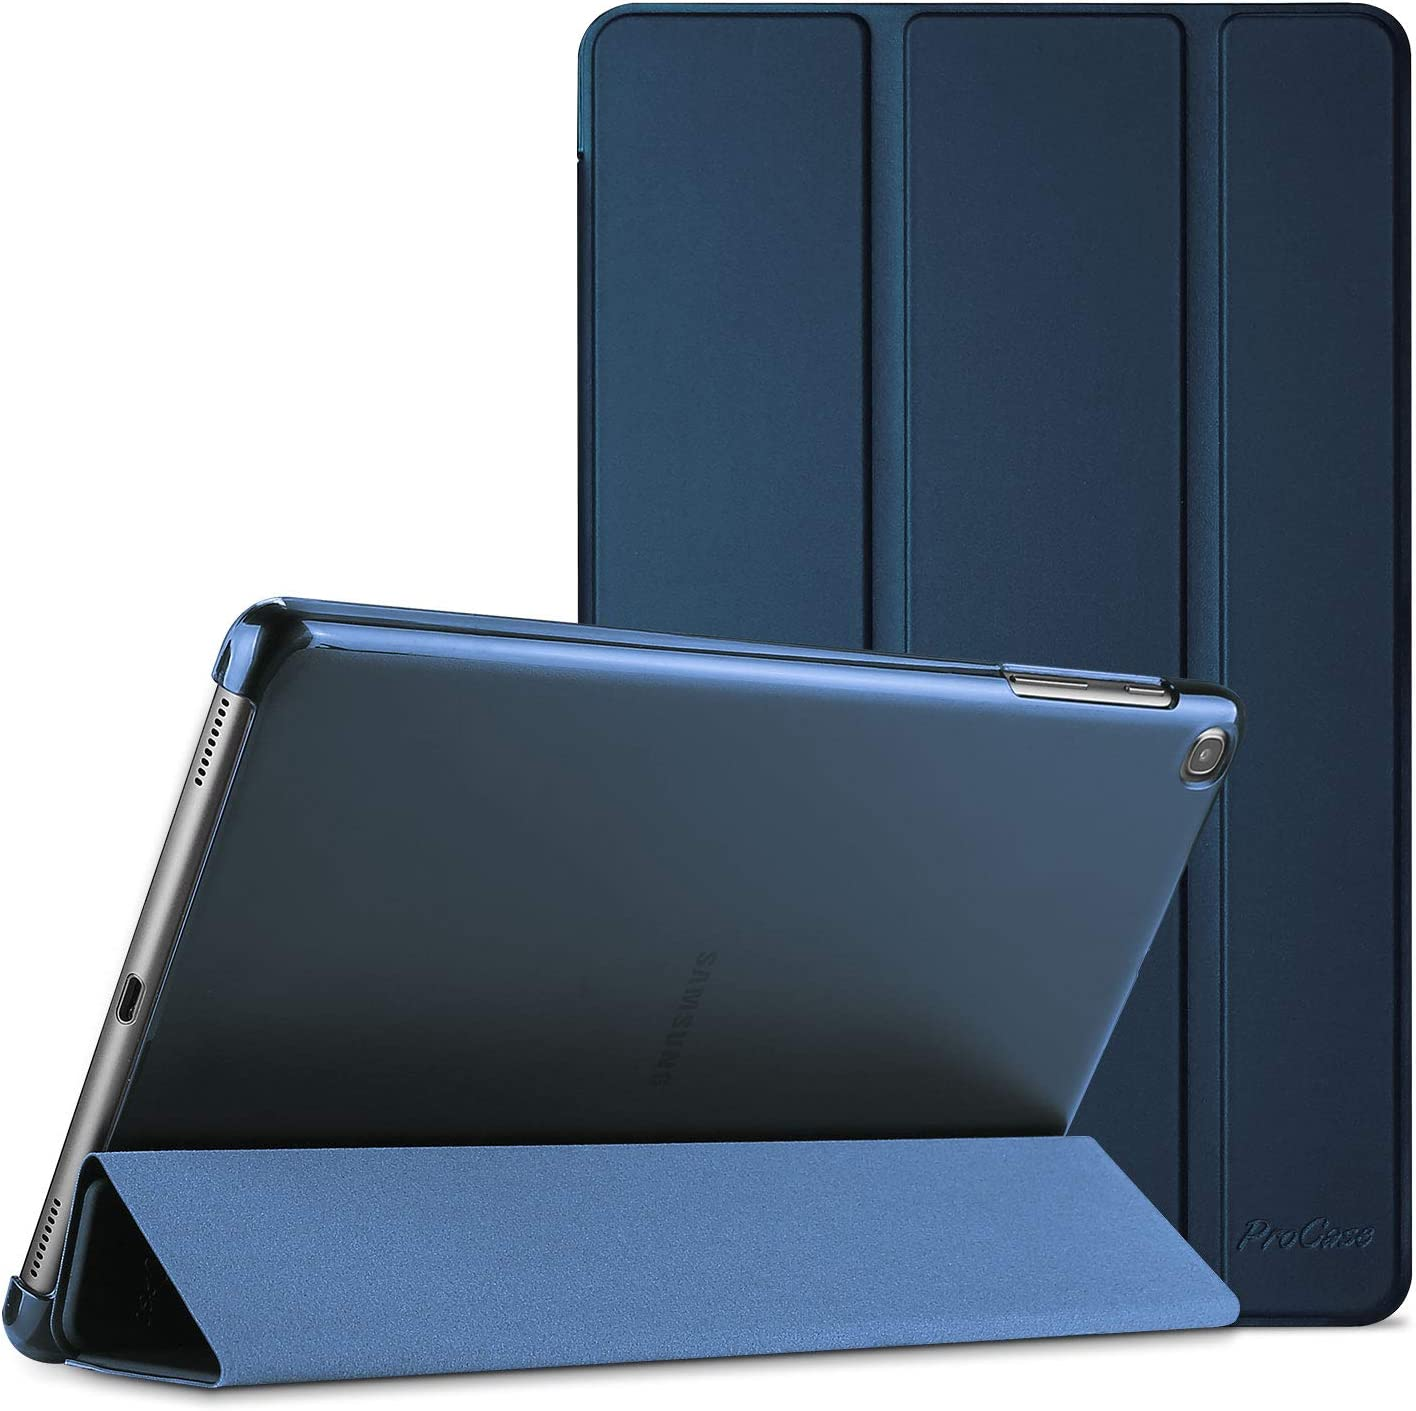 ProCase Galaxy Tab A 10.1 Case Many popular brands 2019 Slim Model T517 T510 T515 Challenge the lowest price L